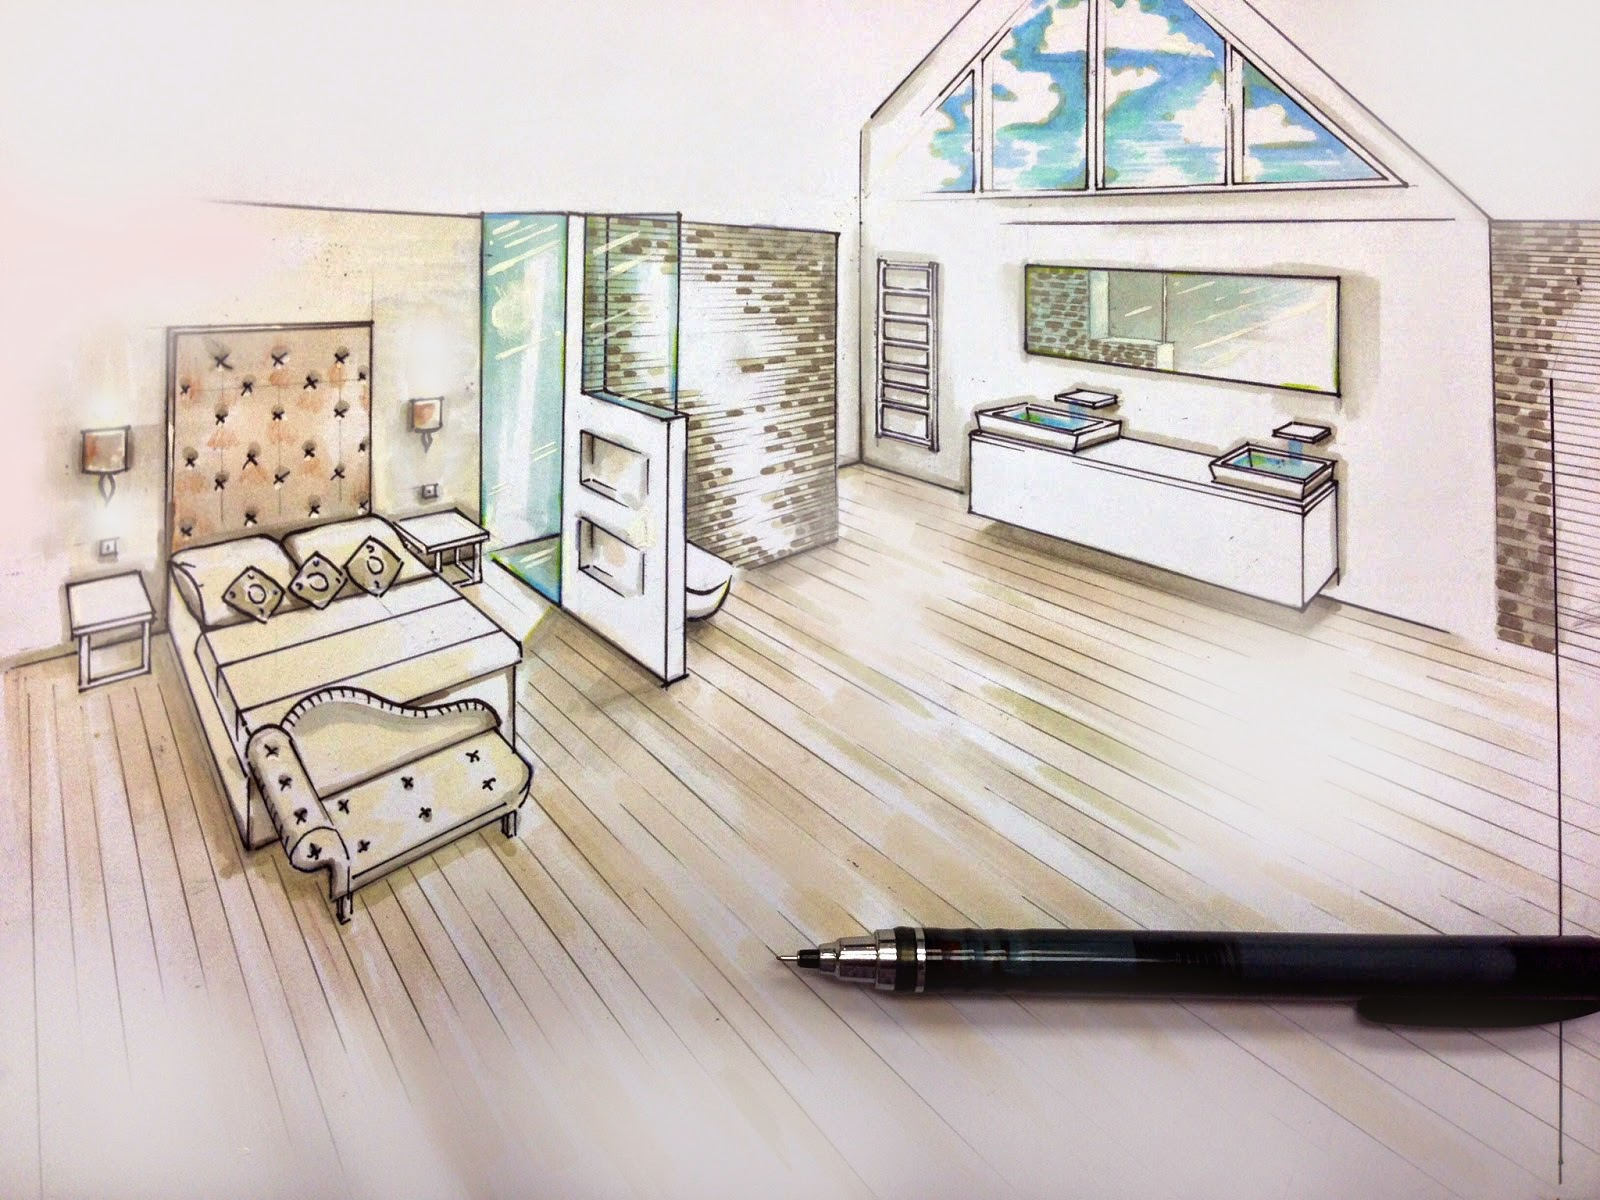 david dangerous david smith interior illustrator